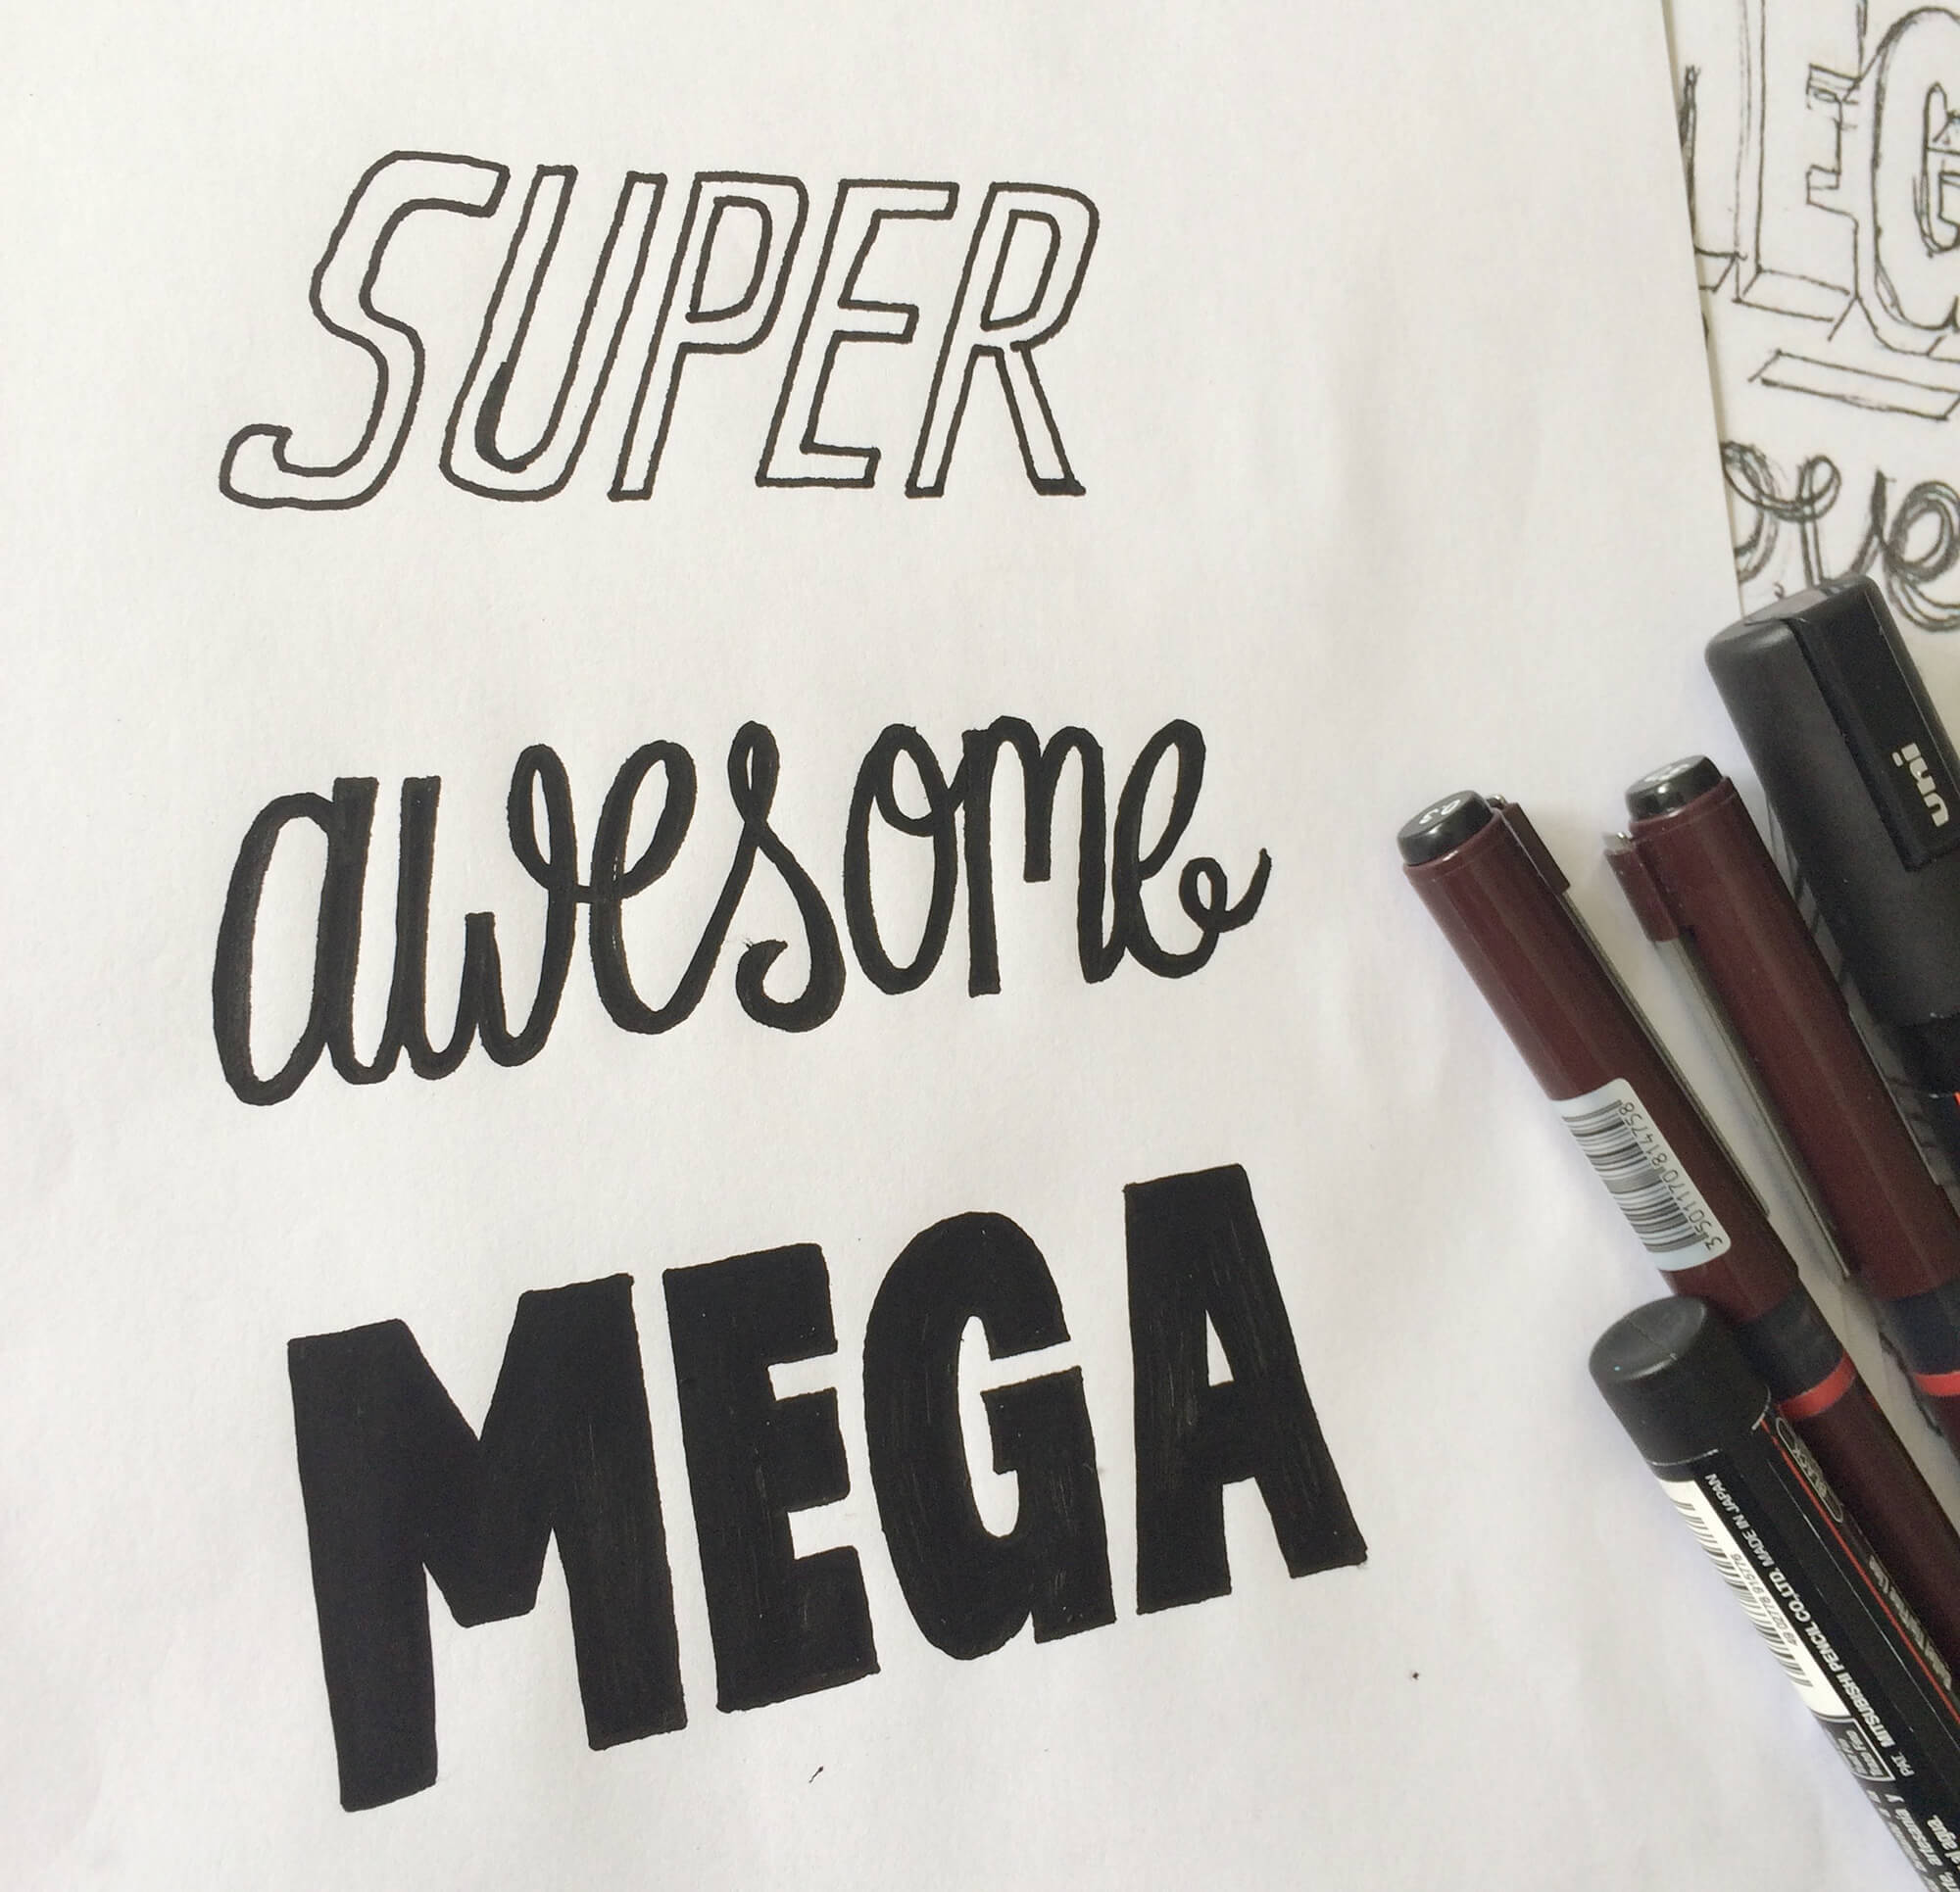 Super Awesome Mega Hand-drawn type